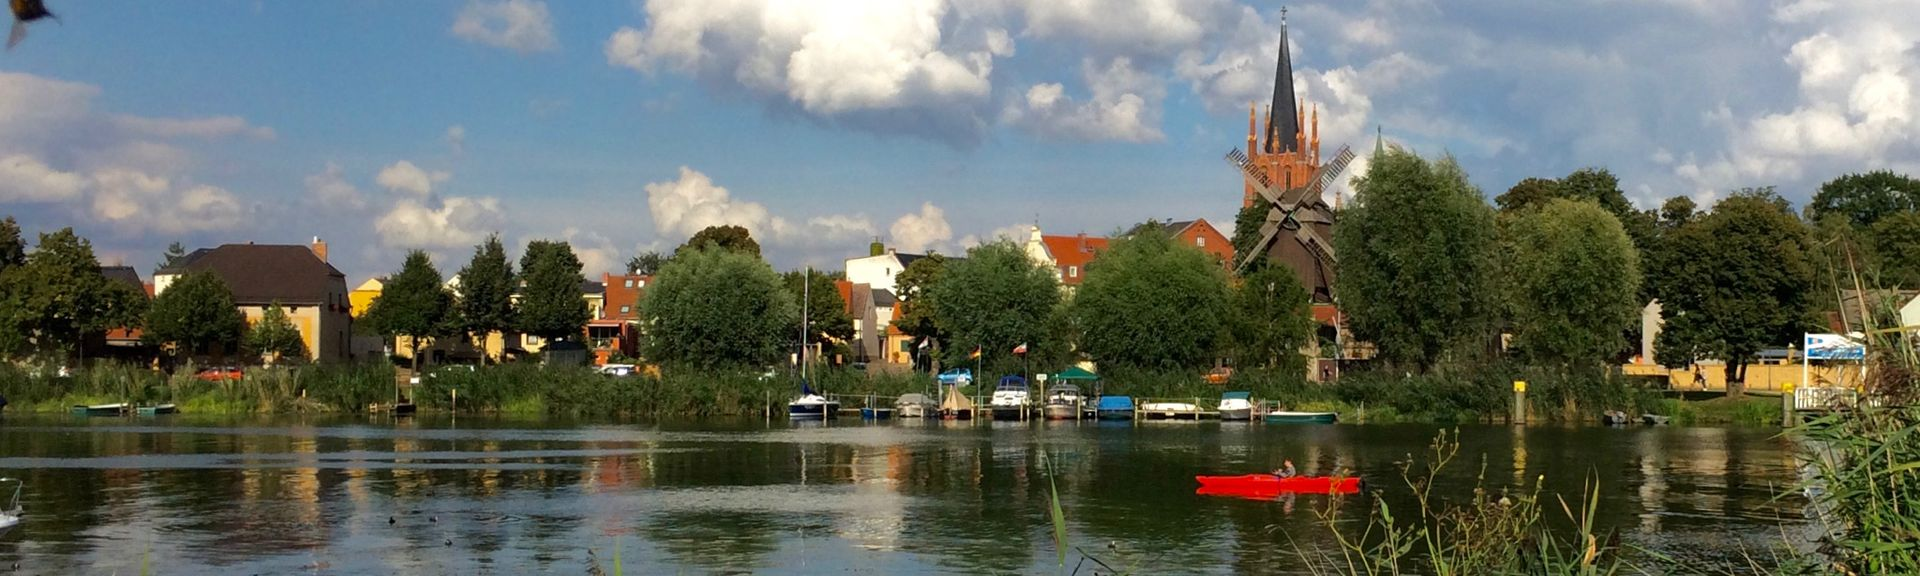 Whore aus Werder (Havel)